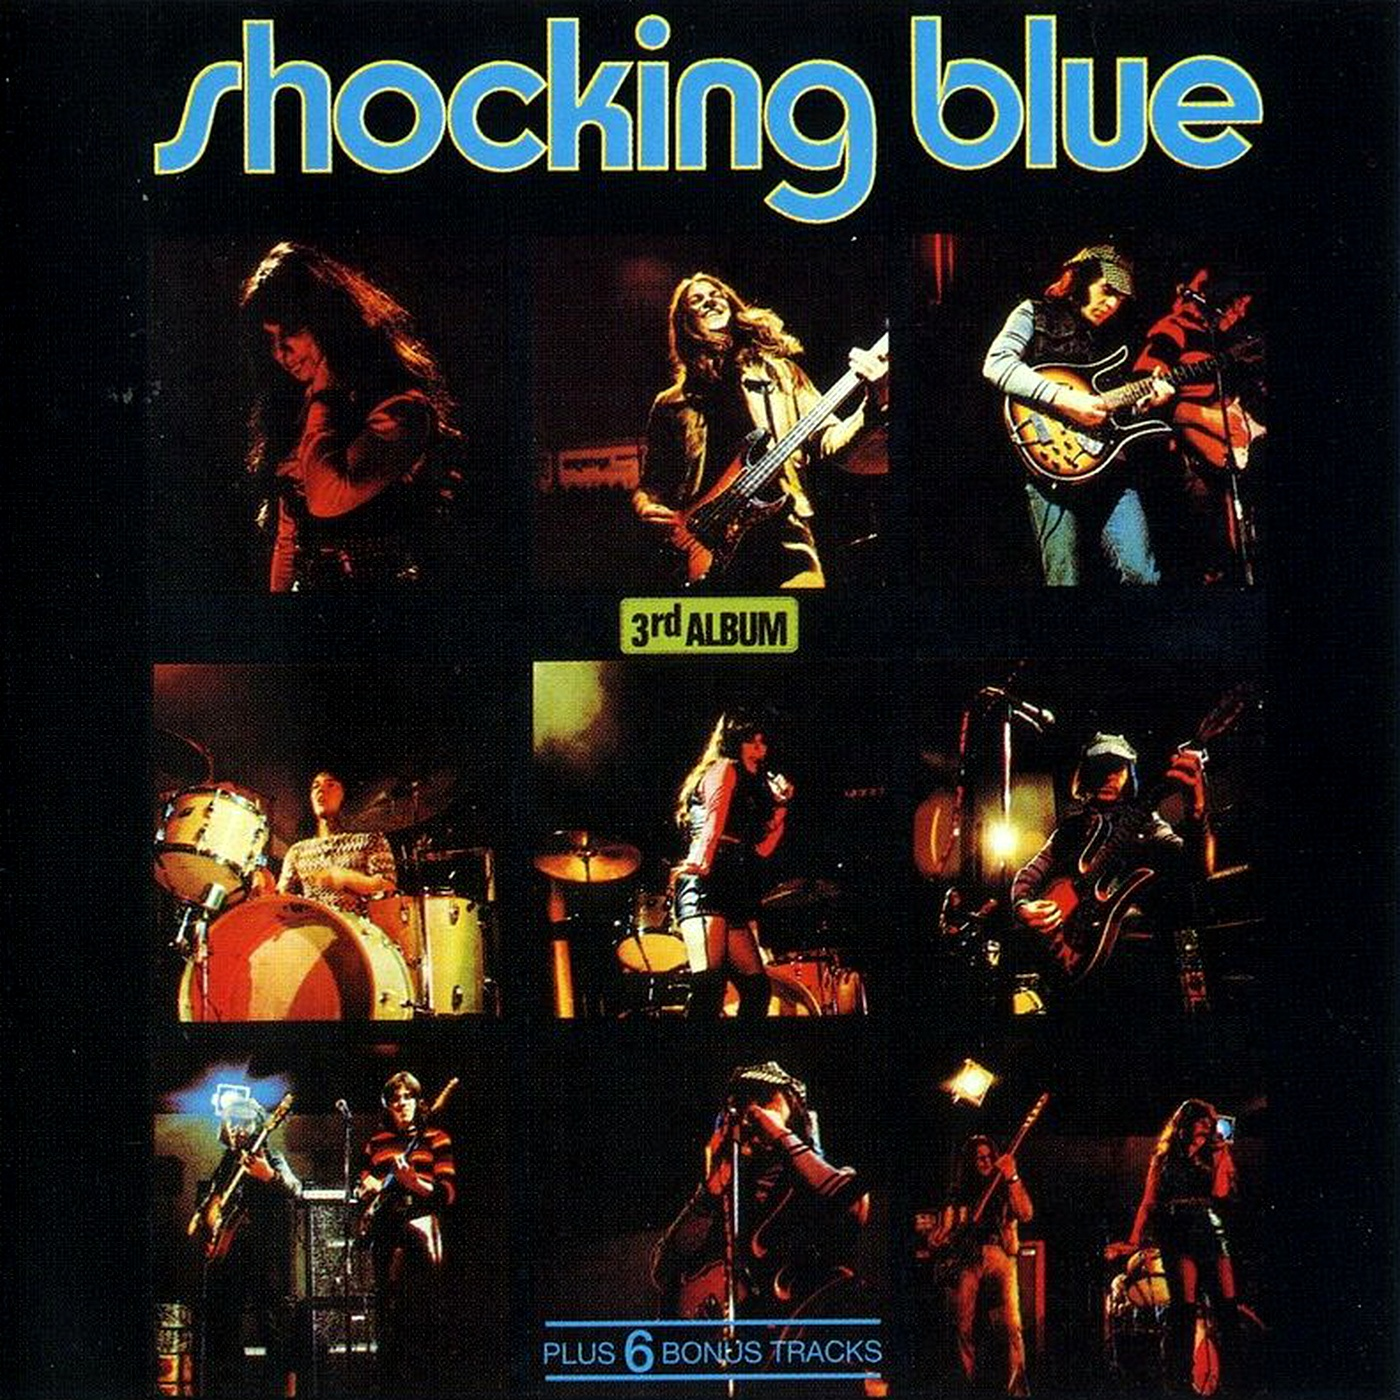 Shocking Blue - 3rd Album (1993)